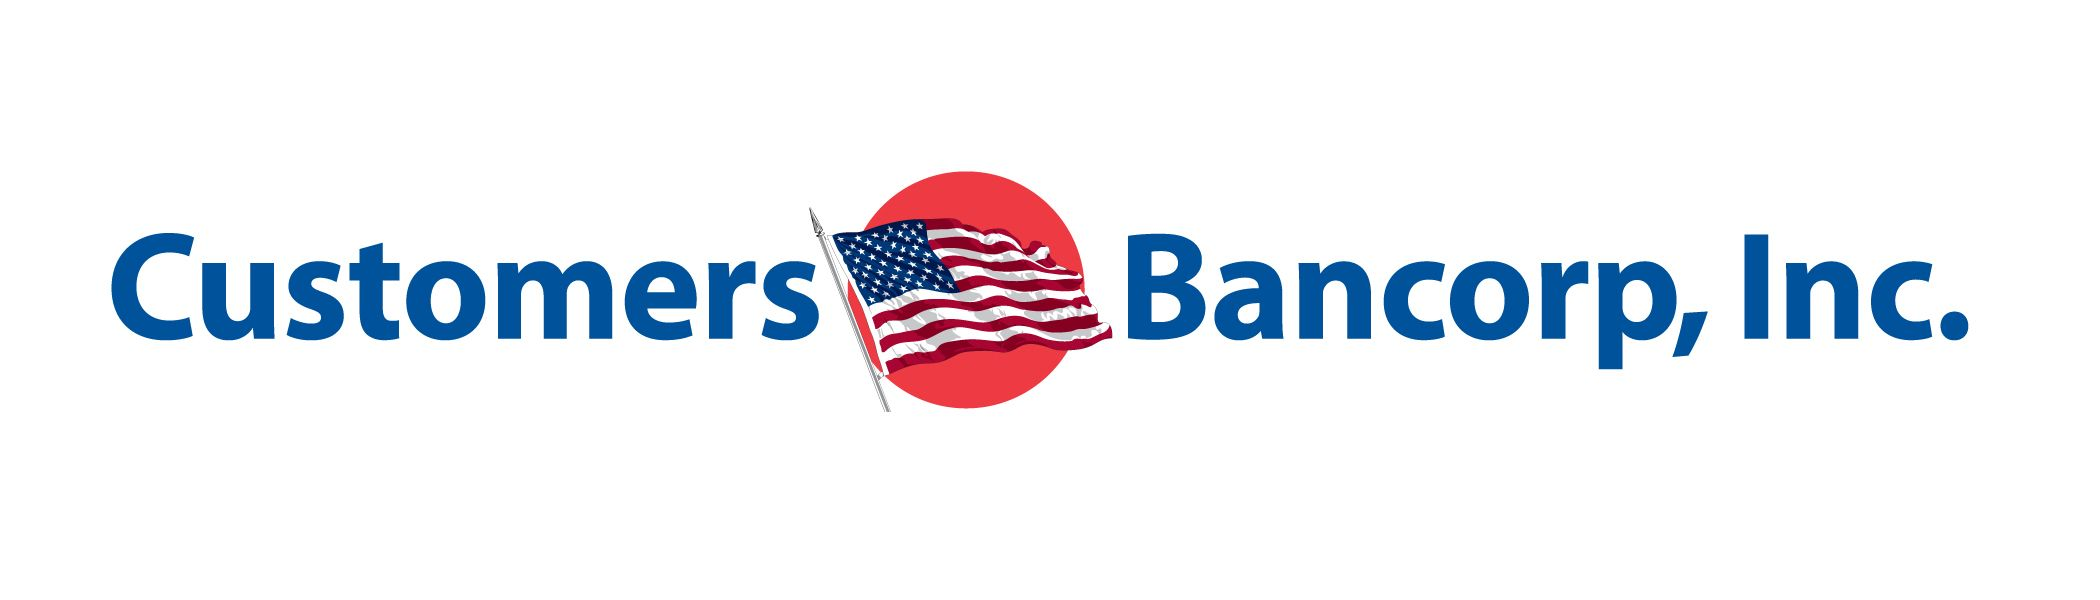 customers bancorp.jpg